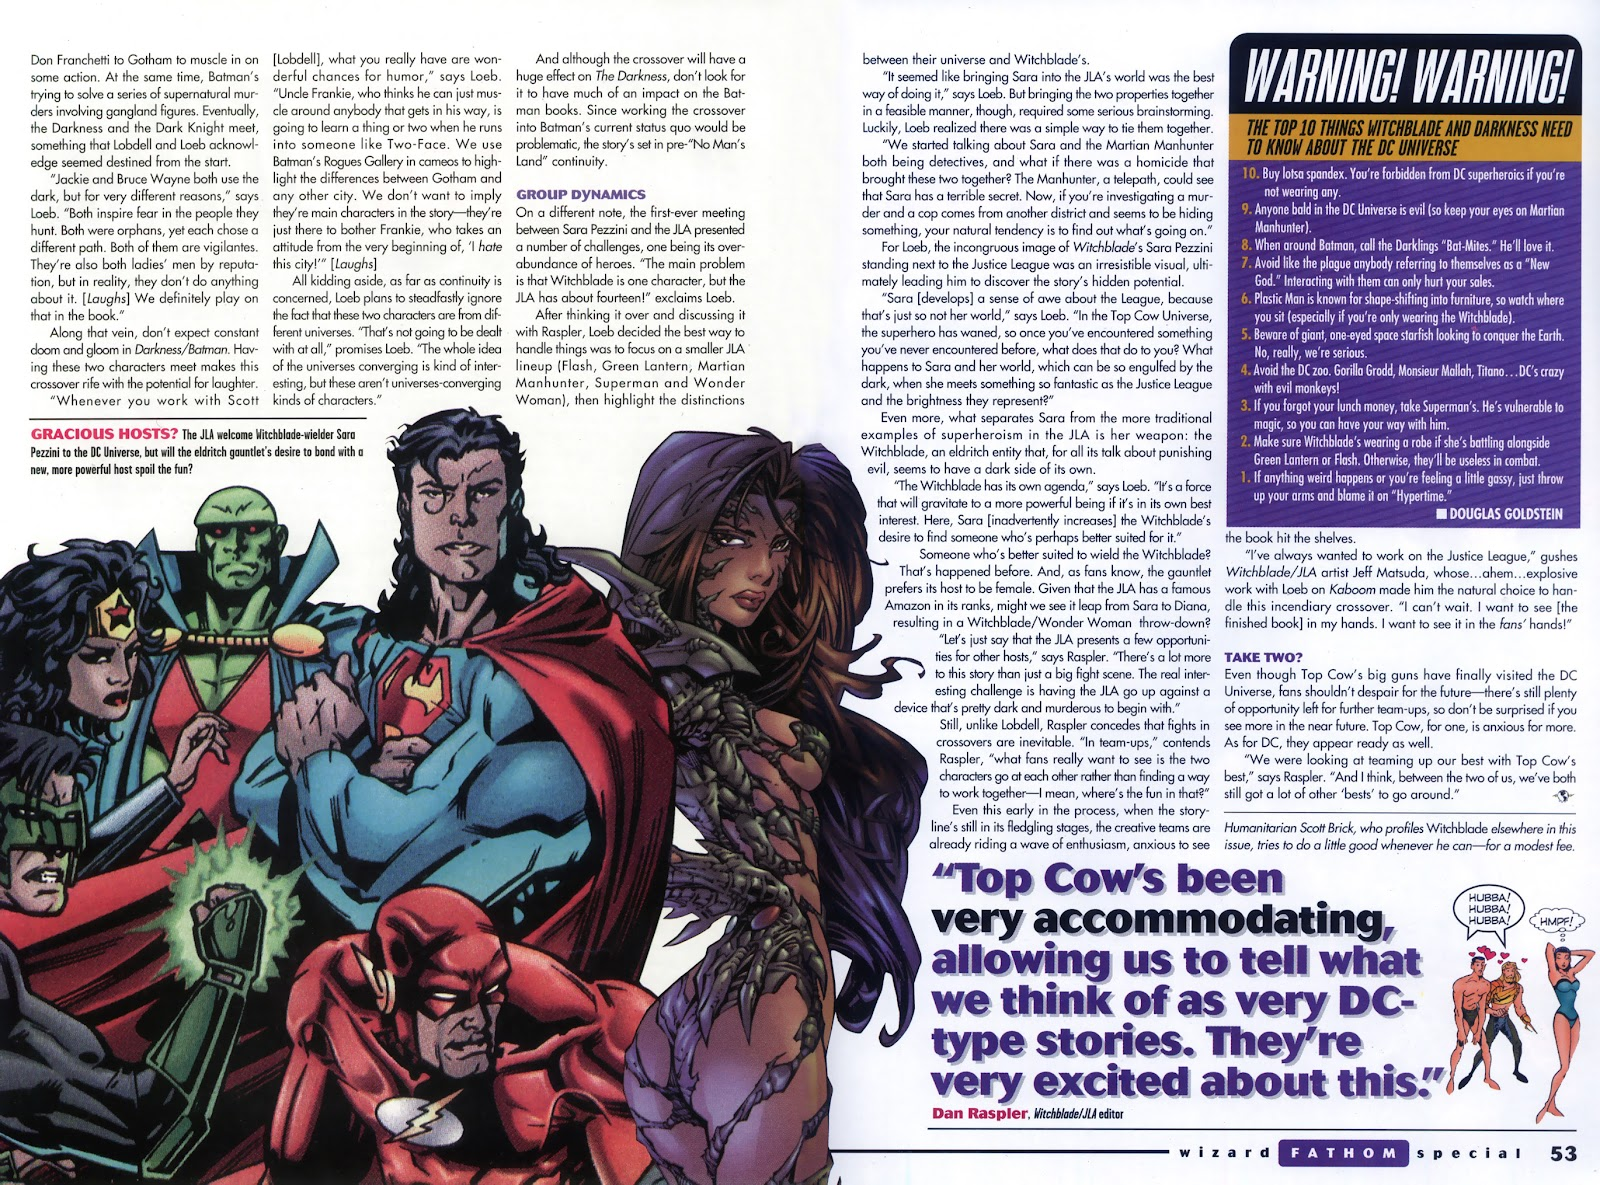 Read online Fathom Special comic -  Issue # Full - 39